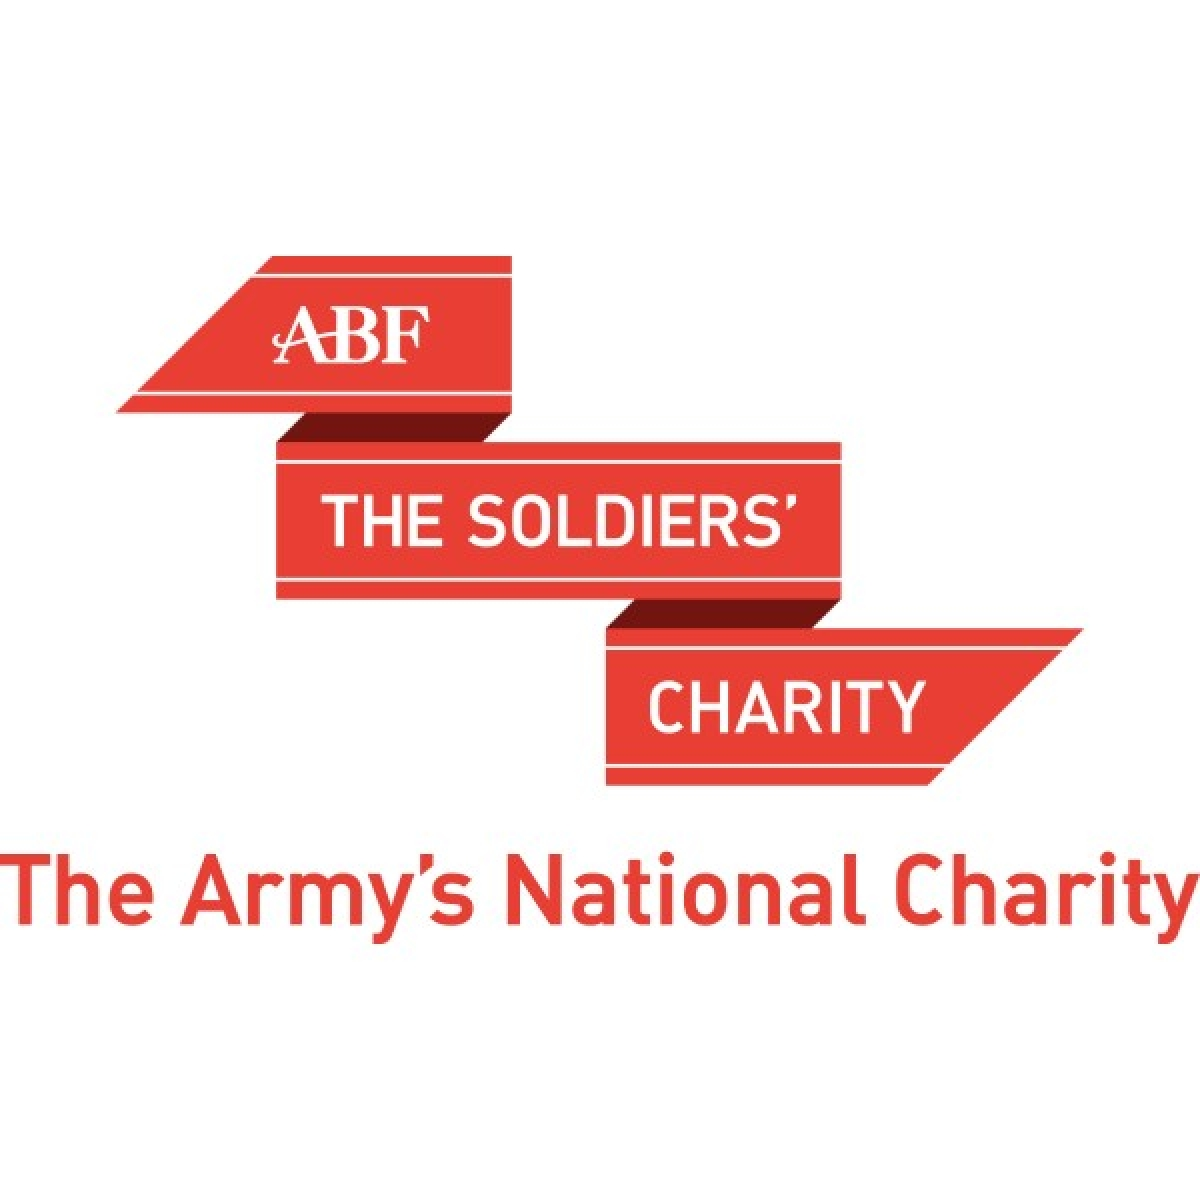 ABF The Soldiers' Charity eCards